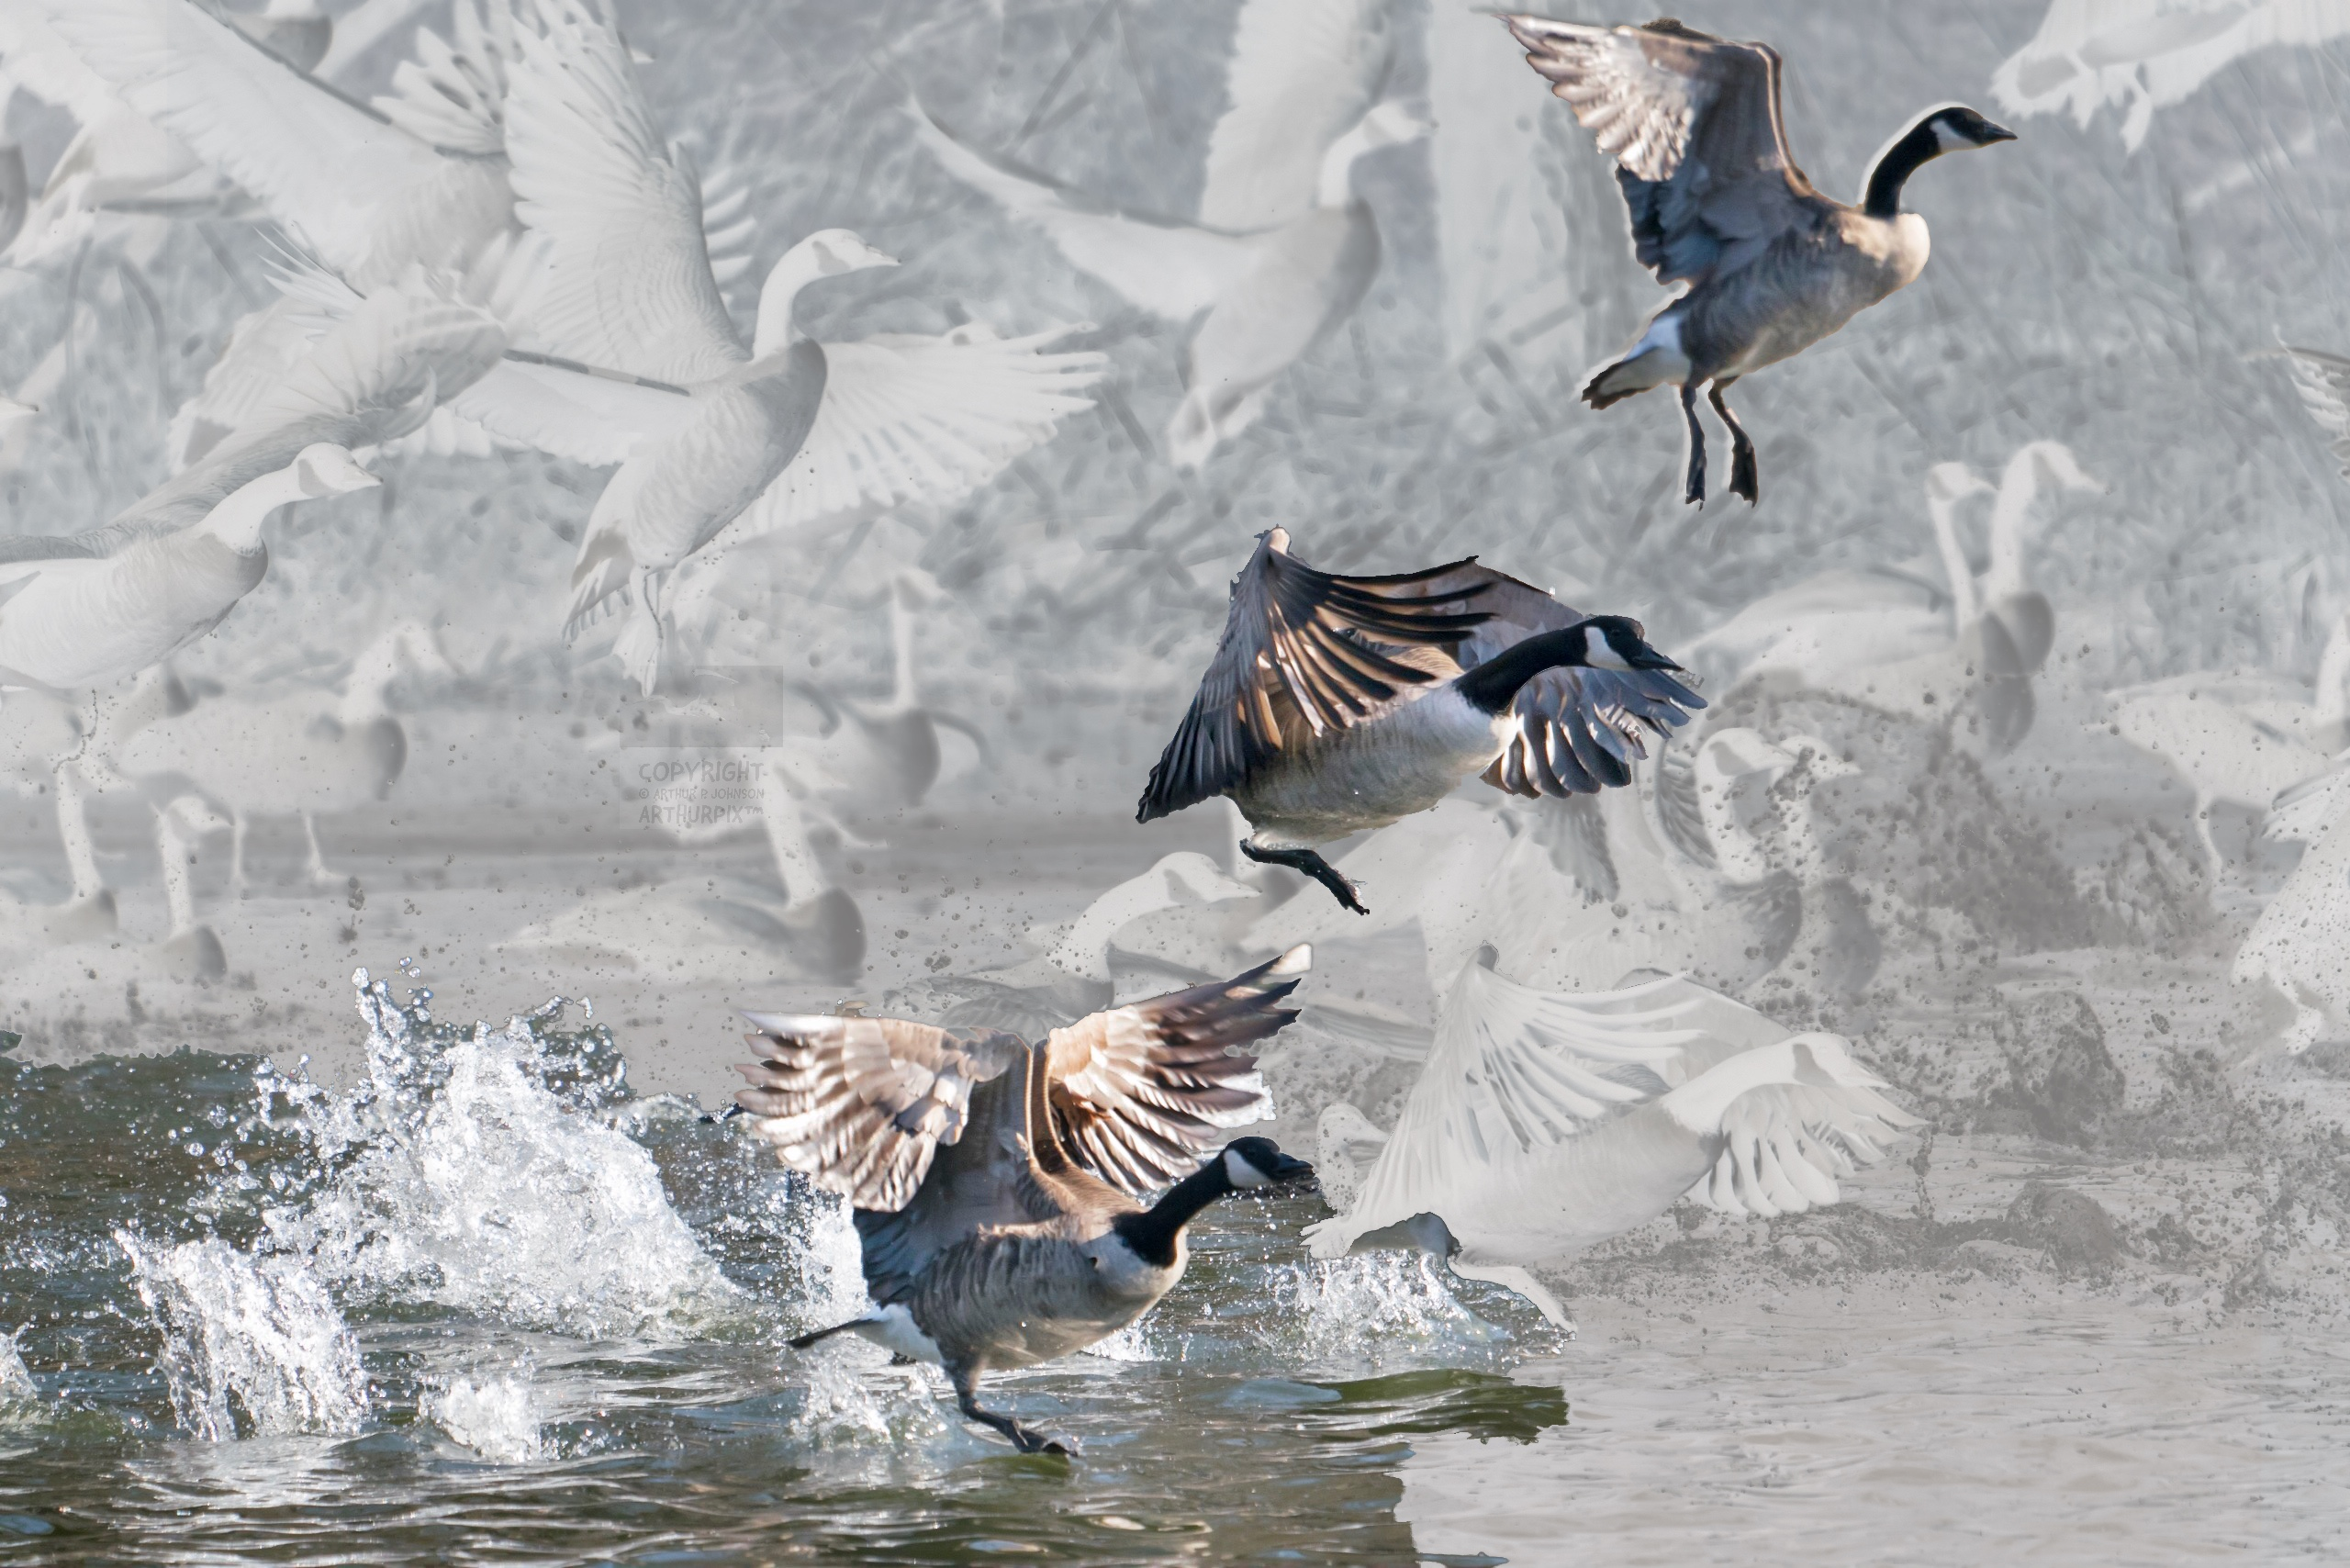 Canada geese flying skyward from the surface of a roiled pond.